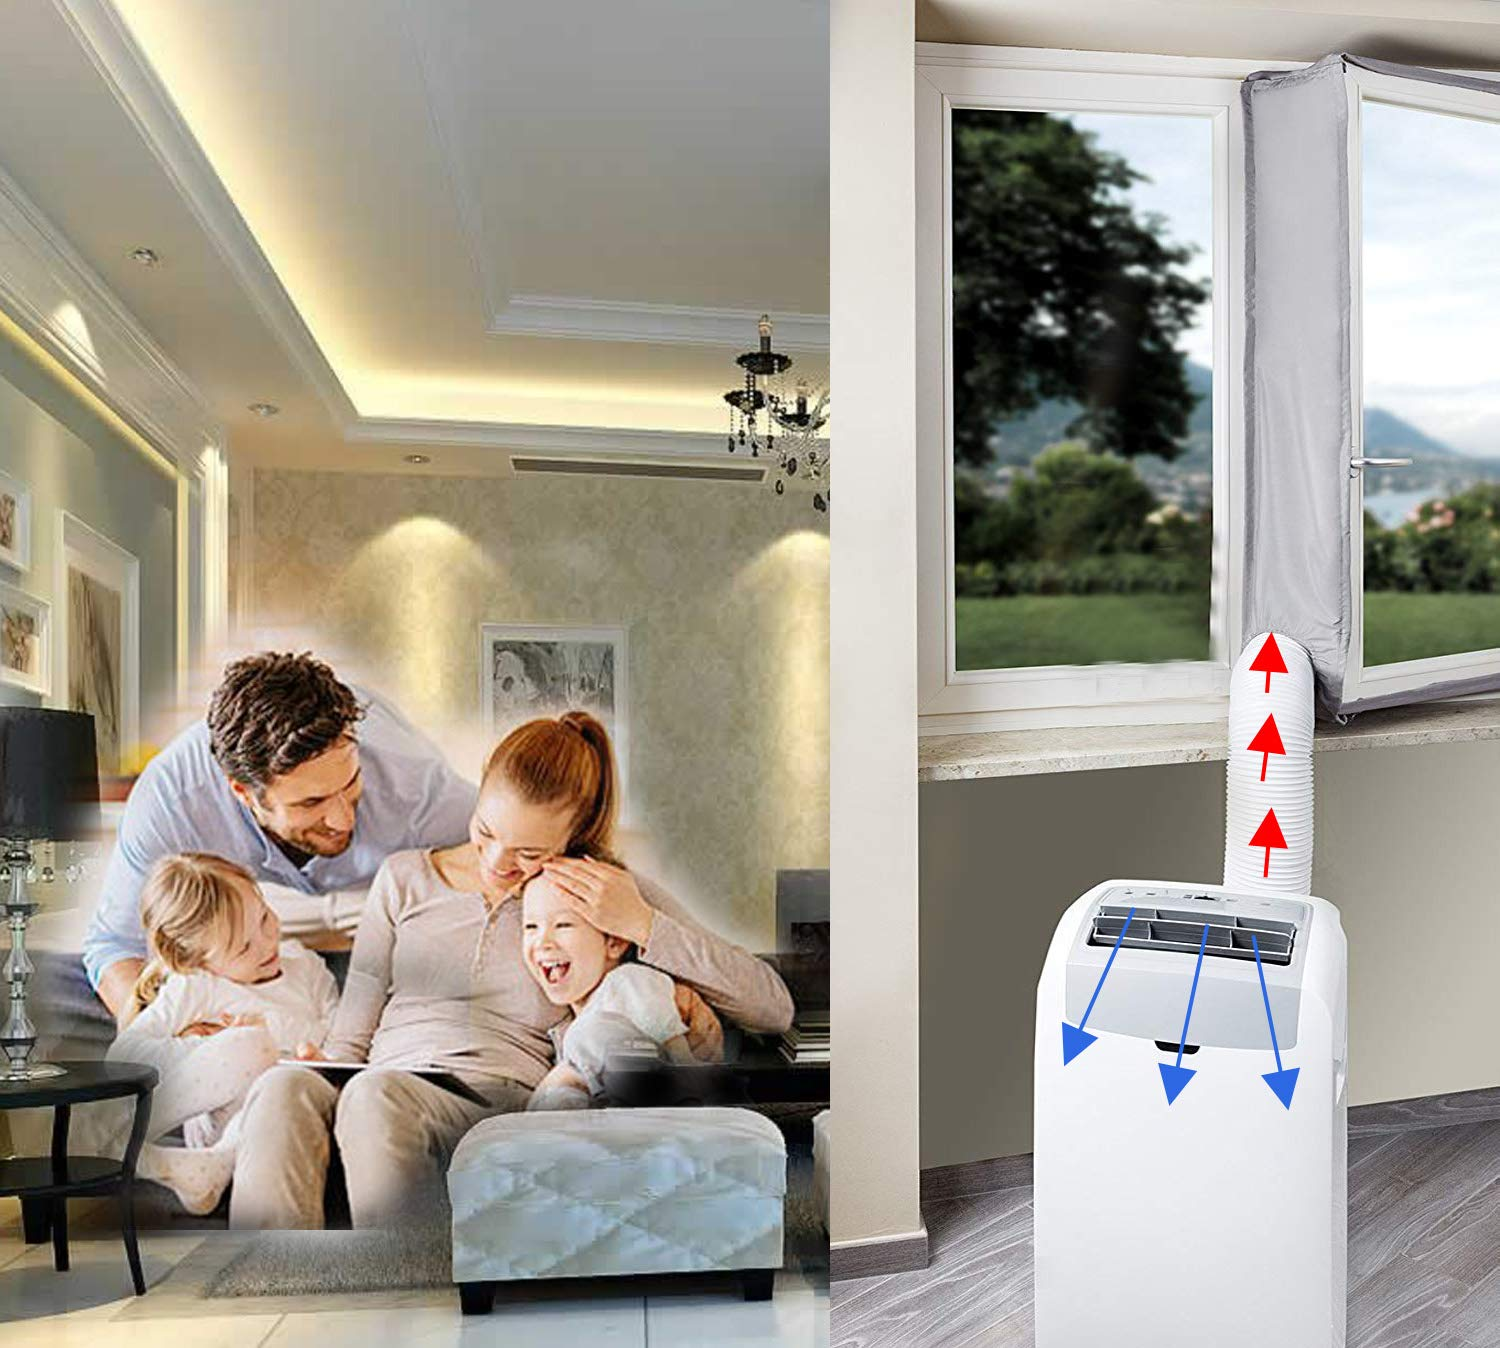 Window Seal for Portable Air Conditioner and Tumble Dryer,Window Venting for Mobile Air Conditioner Exchange Hot Air stop From the Outside Entering Room Air conditioner Exhaust No Need Drilling Hose